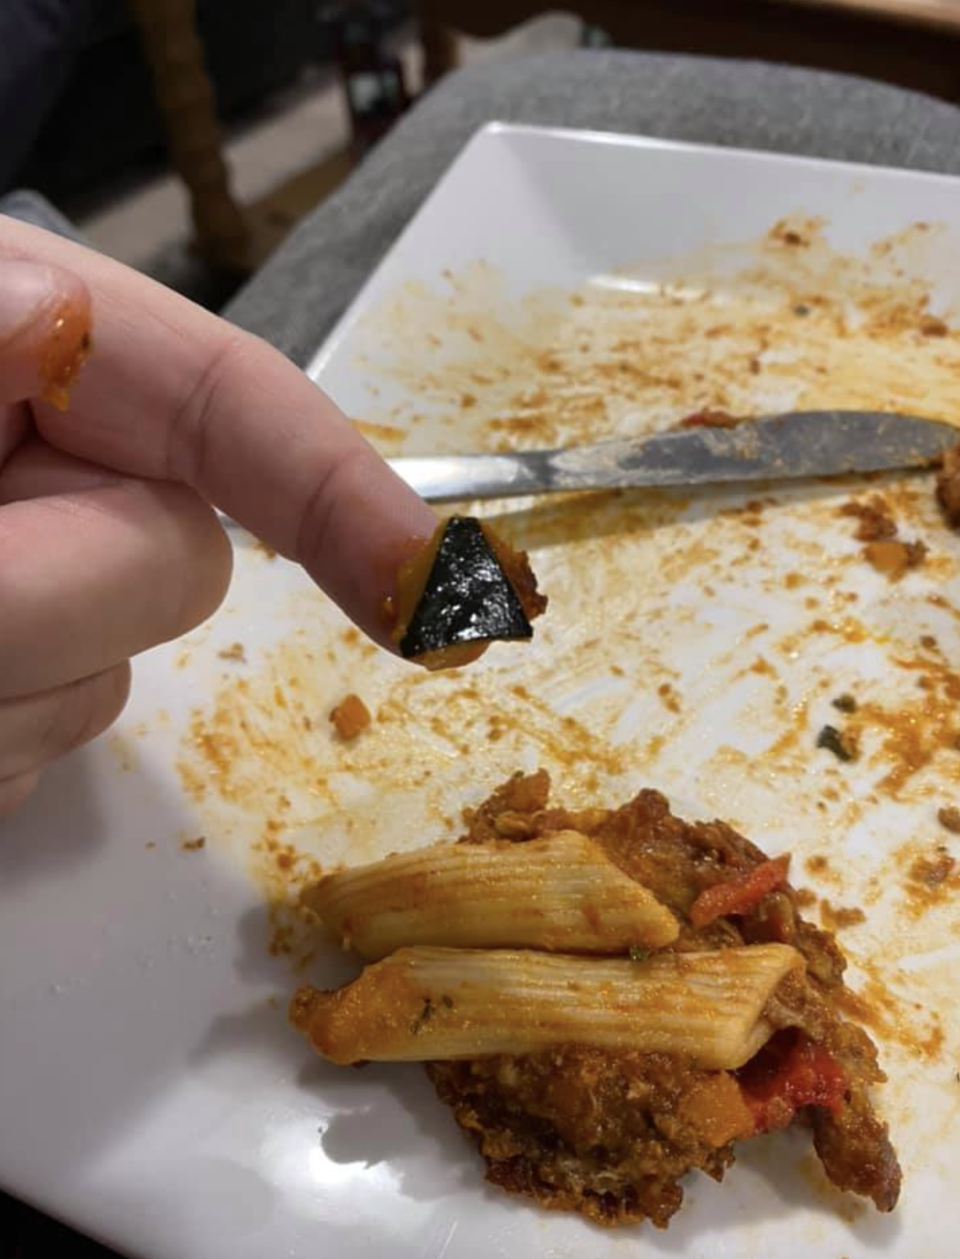 A black object is displayed on a person's finger above a plate with pasta on it.